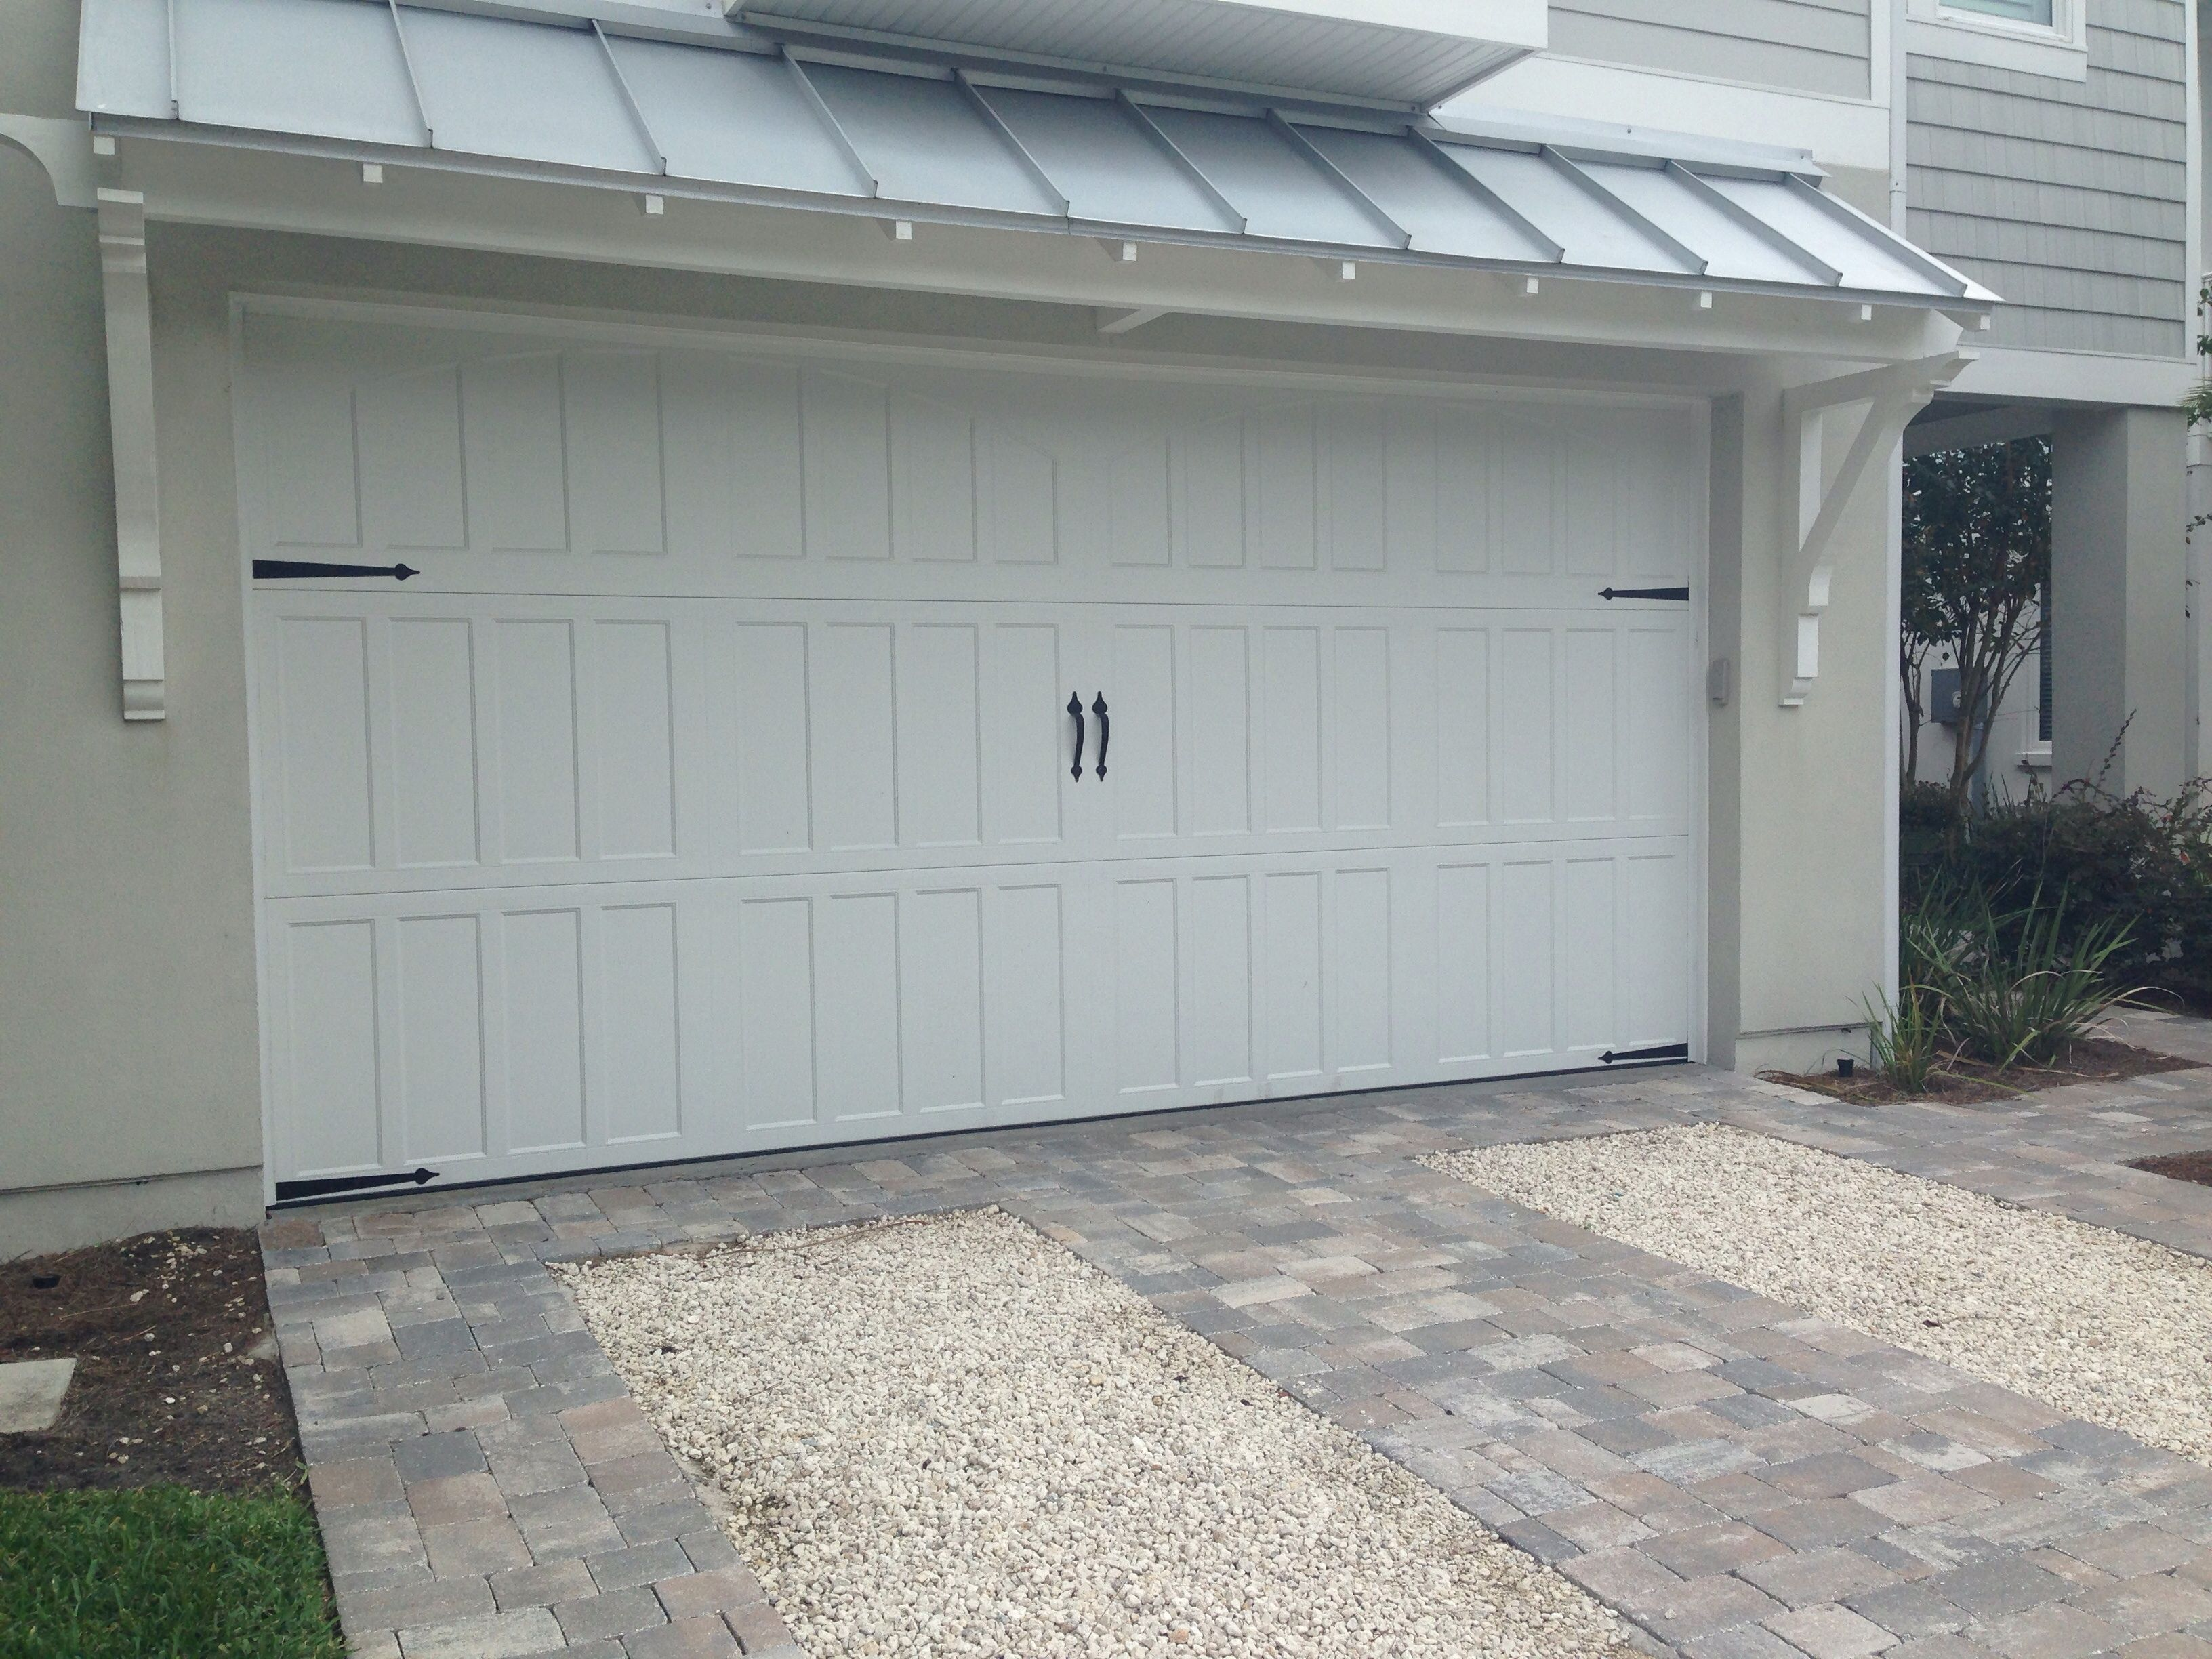 Awesome One Clear Choice Garage Doors Castle Rock Co